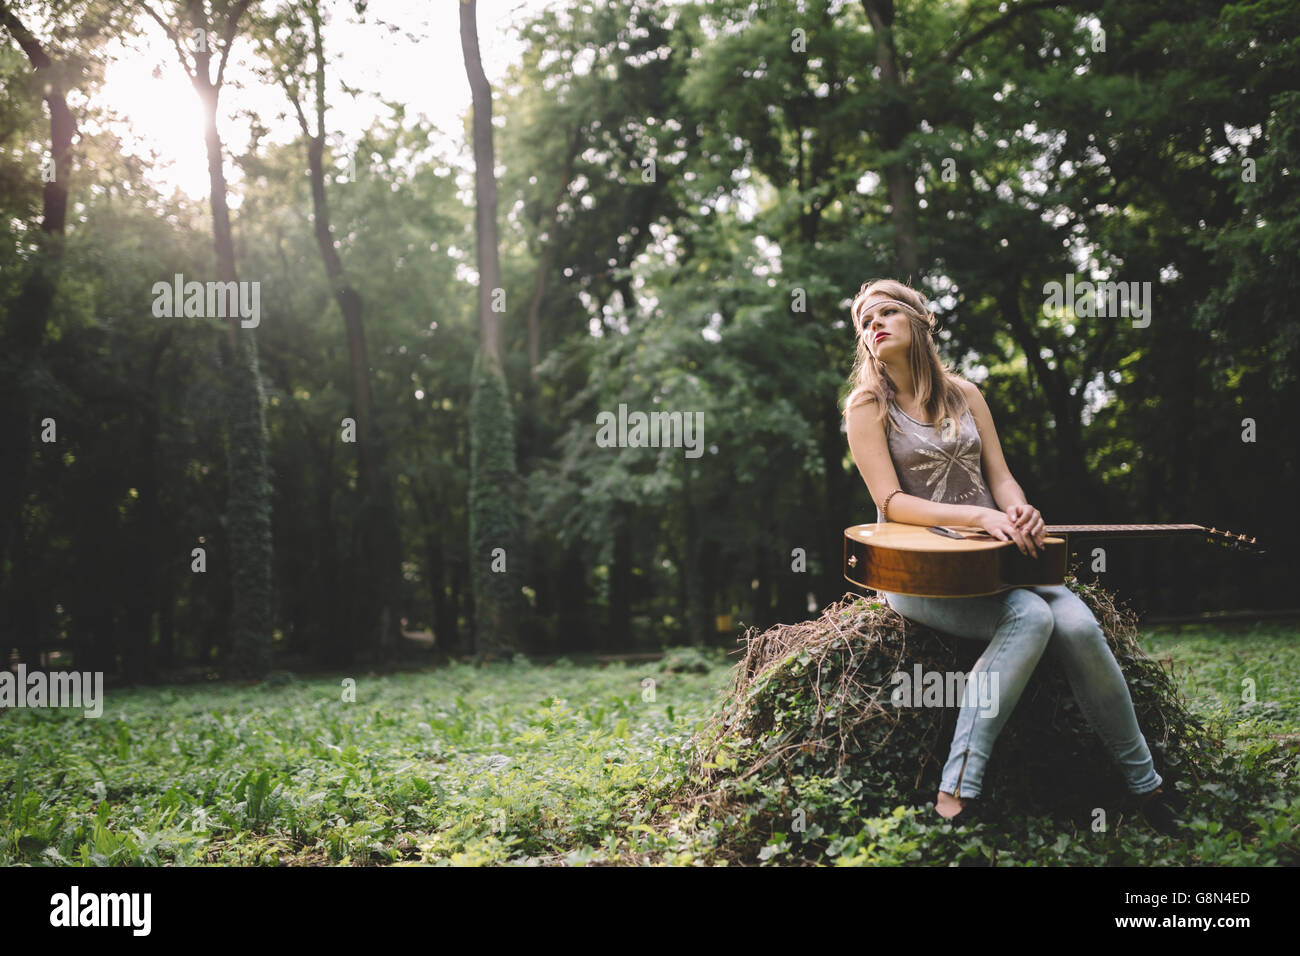 Depressed girl filling void after breakup in nature - Stock Image